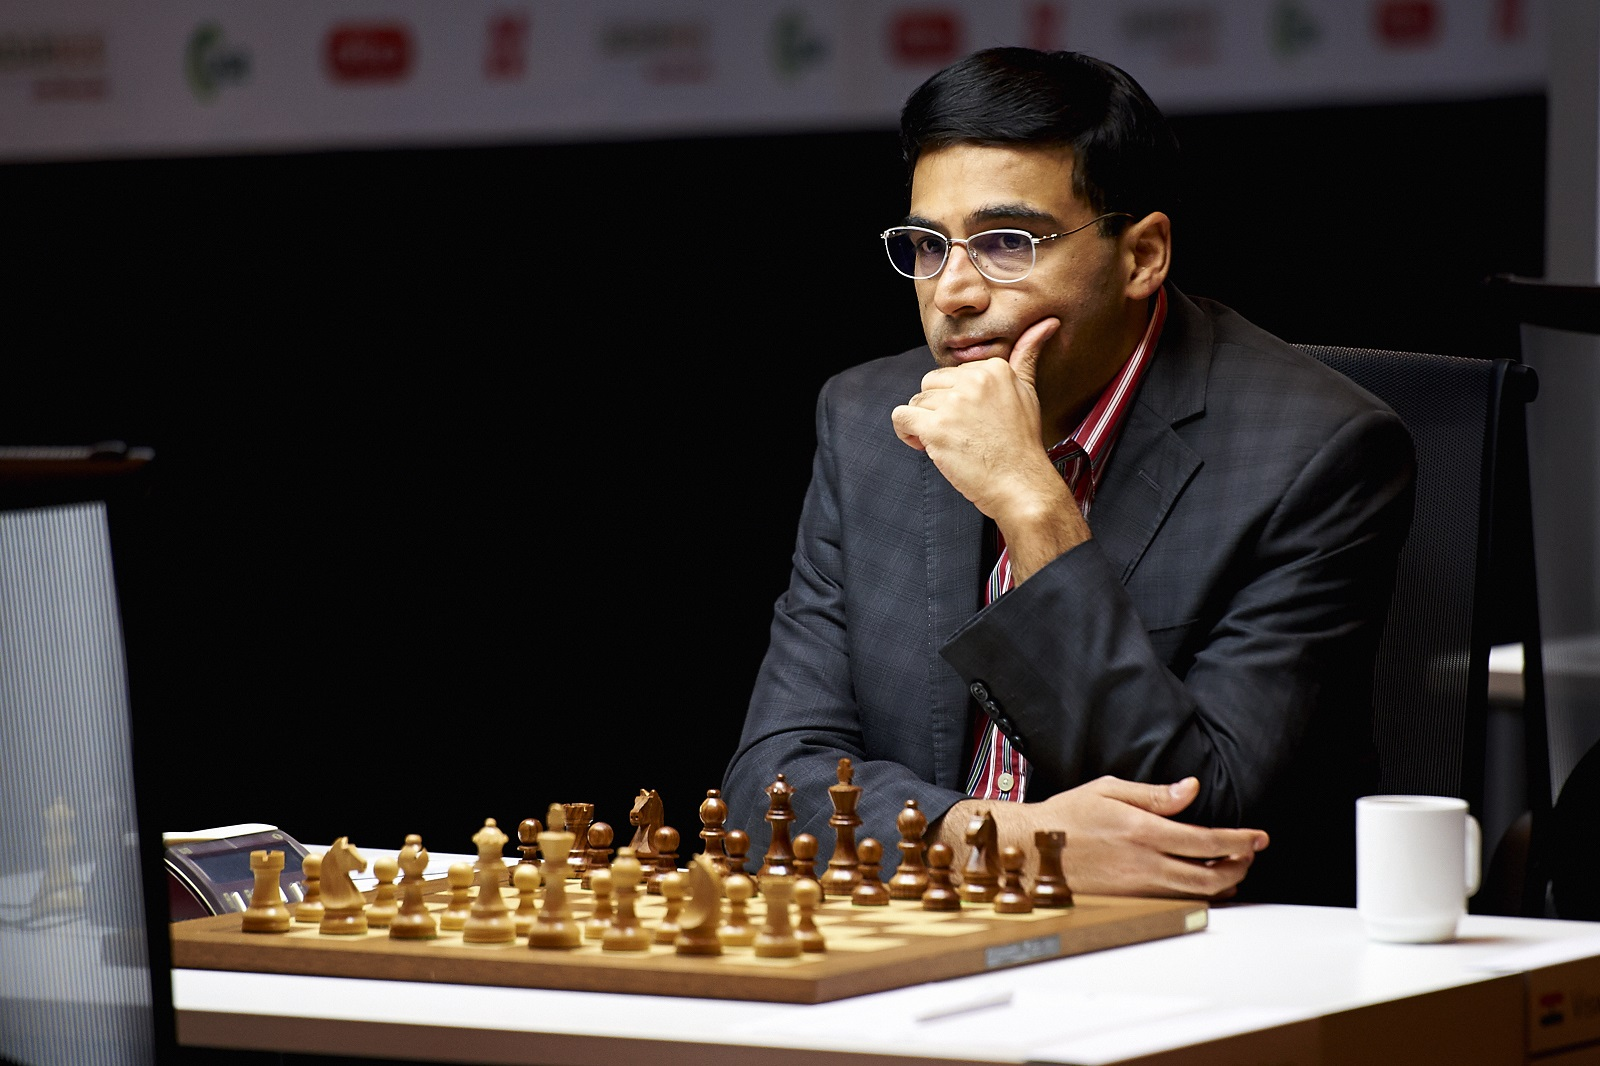 Viswanathan Anand, Indian chess grandmaster extraordinaire, is 50